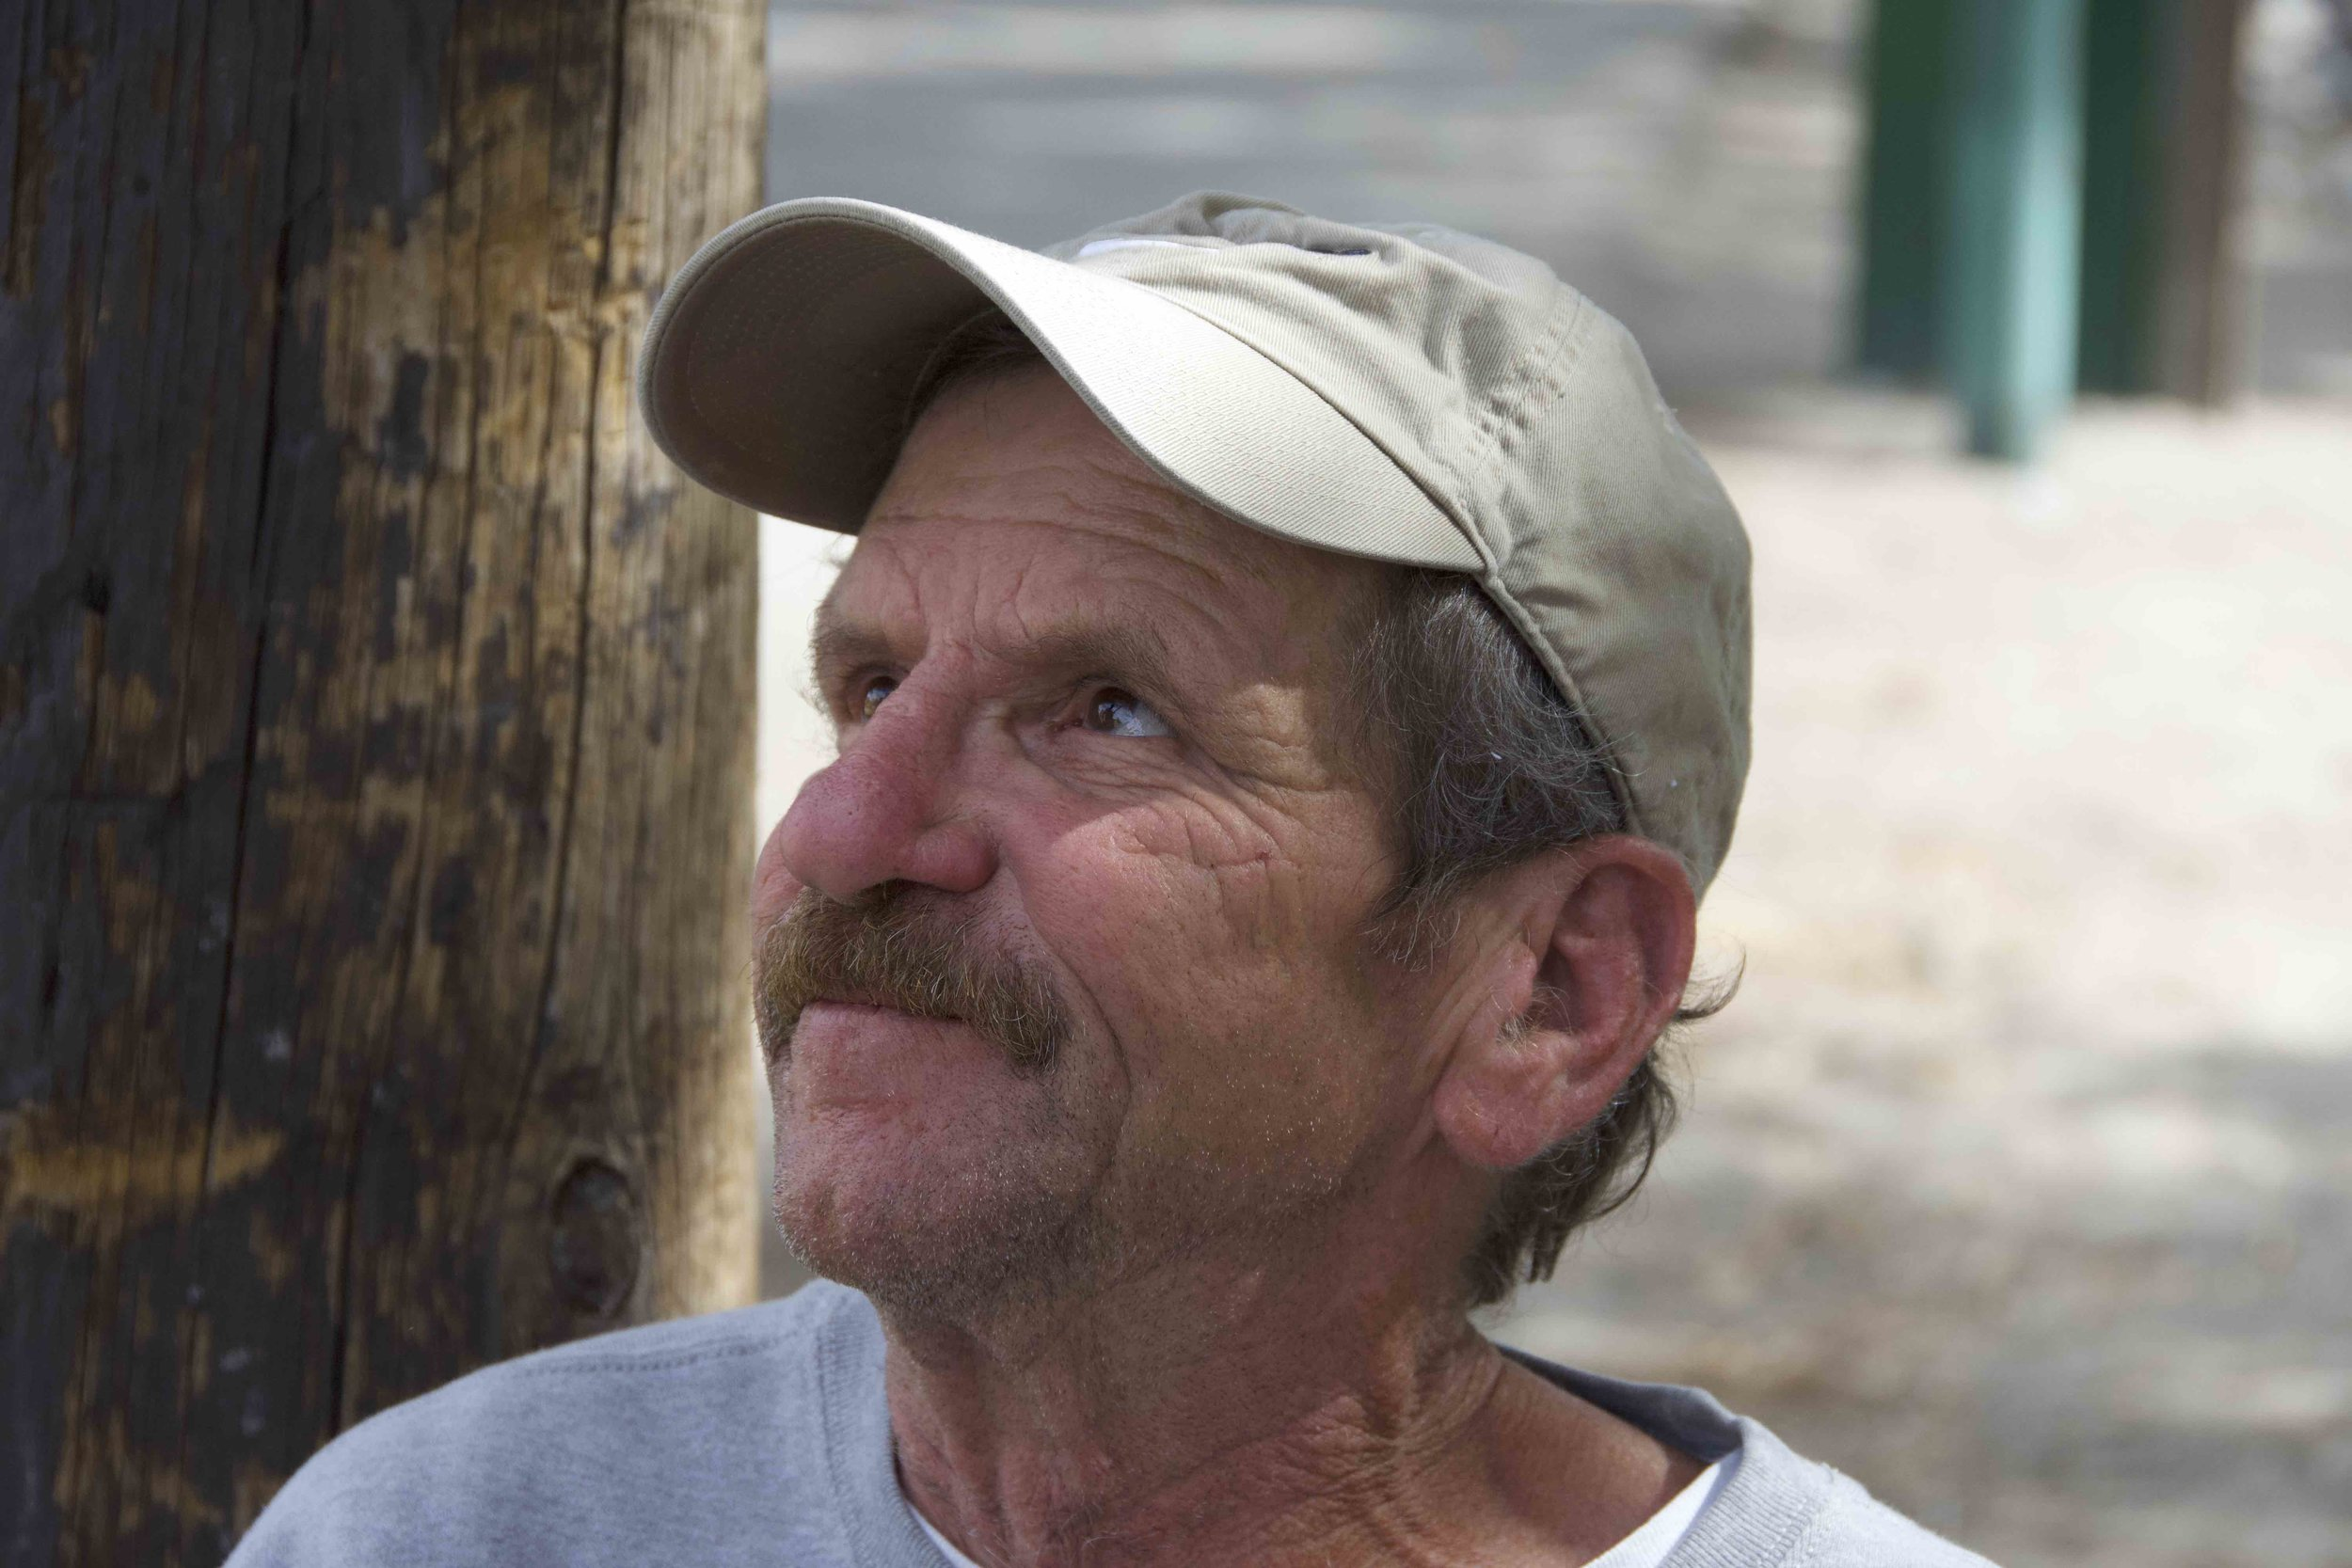 """""""Last year, man, I had this chick cave in my face at a motel. I lost my job. I lost my sight over on the side. I'm a printer, you know, it's taken this long to get myself back together. I've been out here since March … But anyway, things have been looking up,"""" Jimmy Penrod said of why he was living on the streets. Photo by Jordan Blevins with reporting by Prince Nesta."""